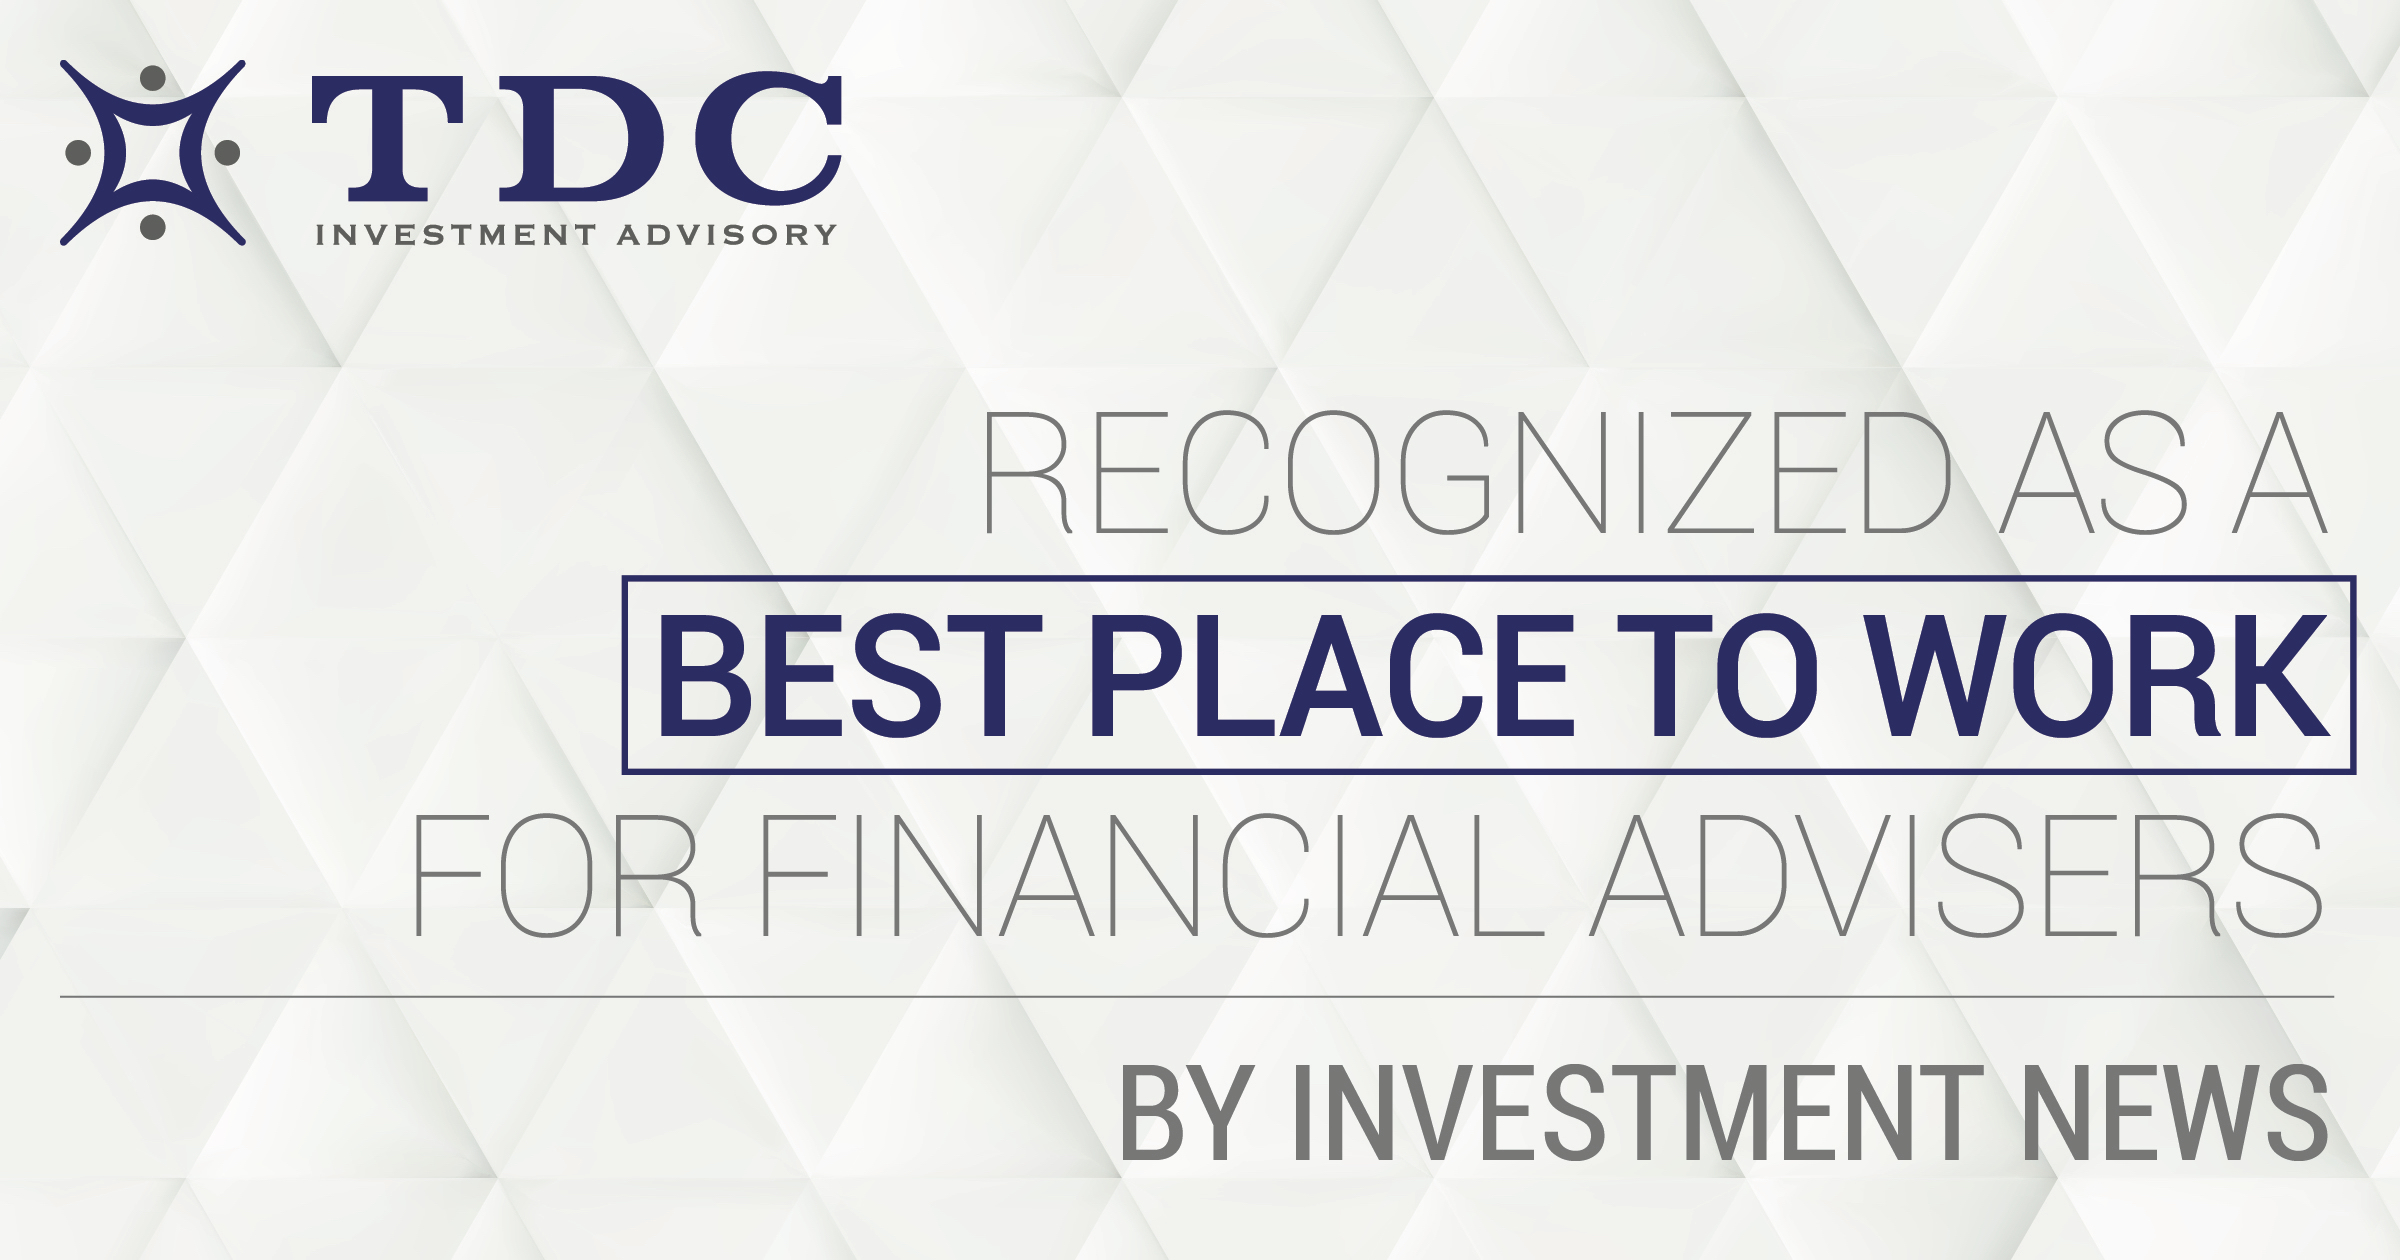 A Best Place to Work for Financial Advisers By Investment News